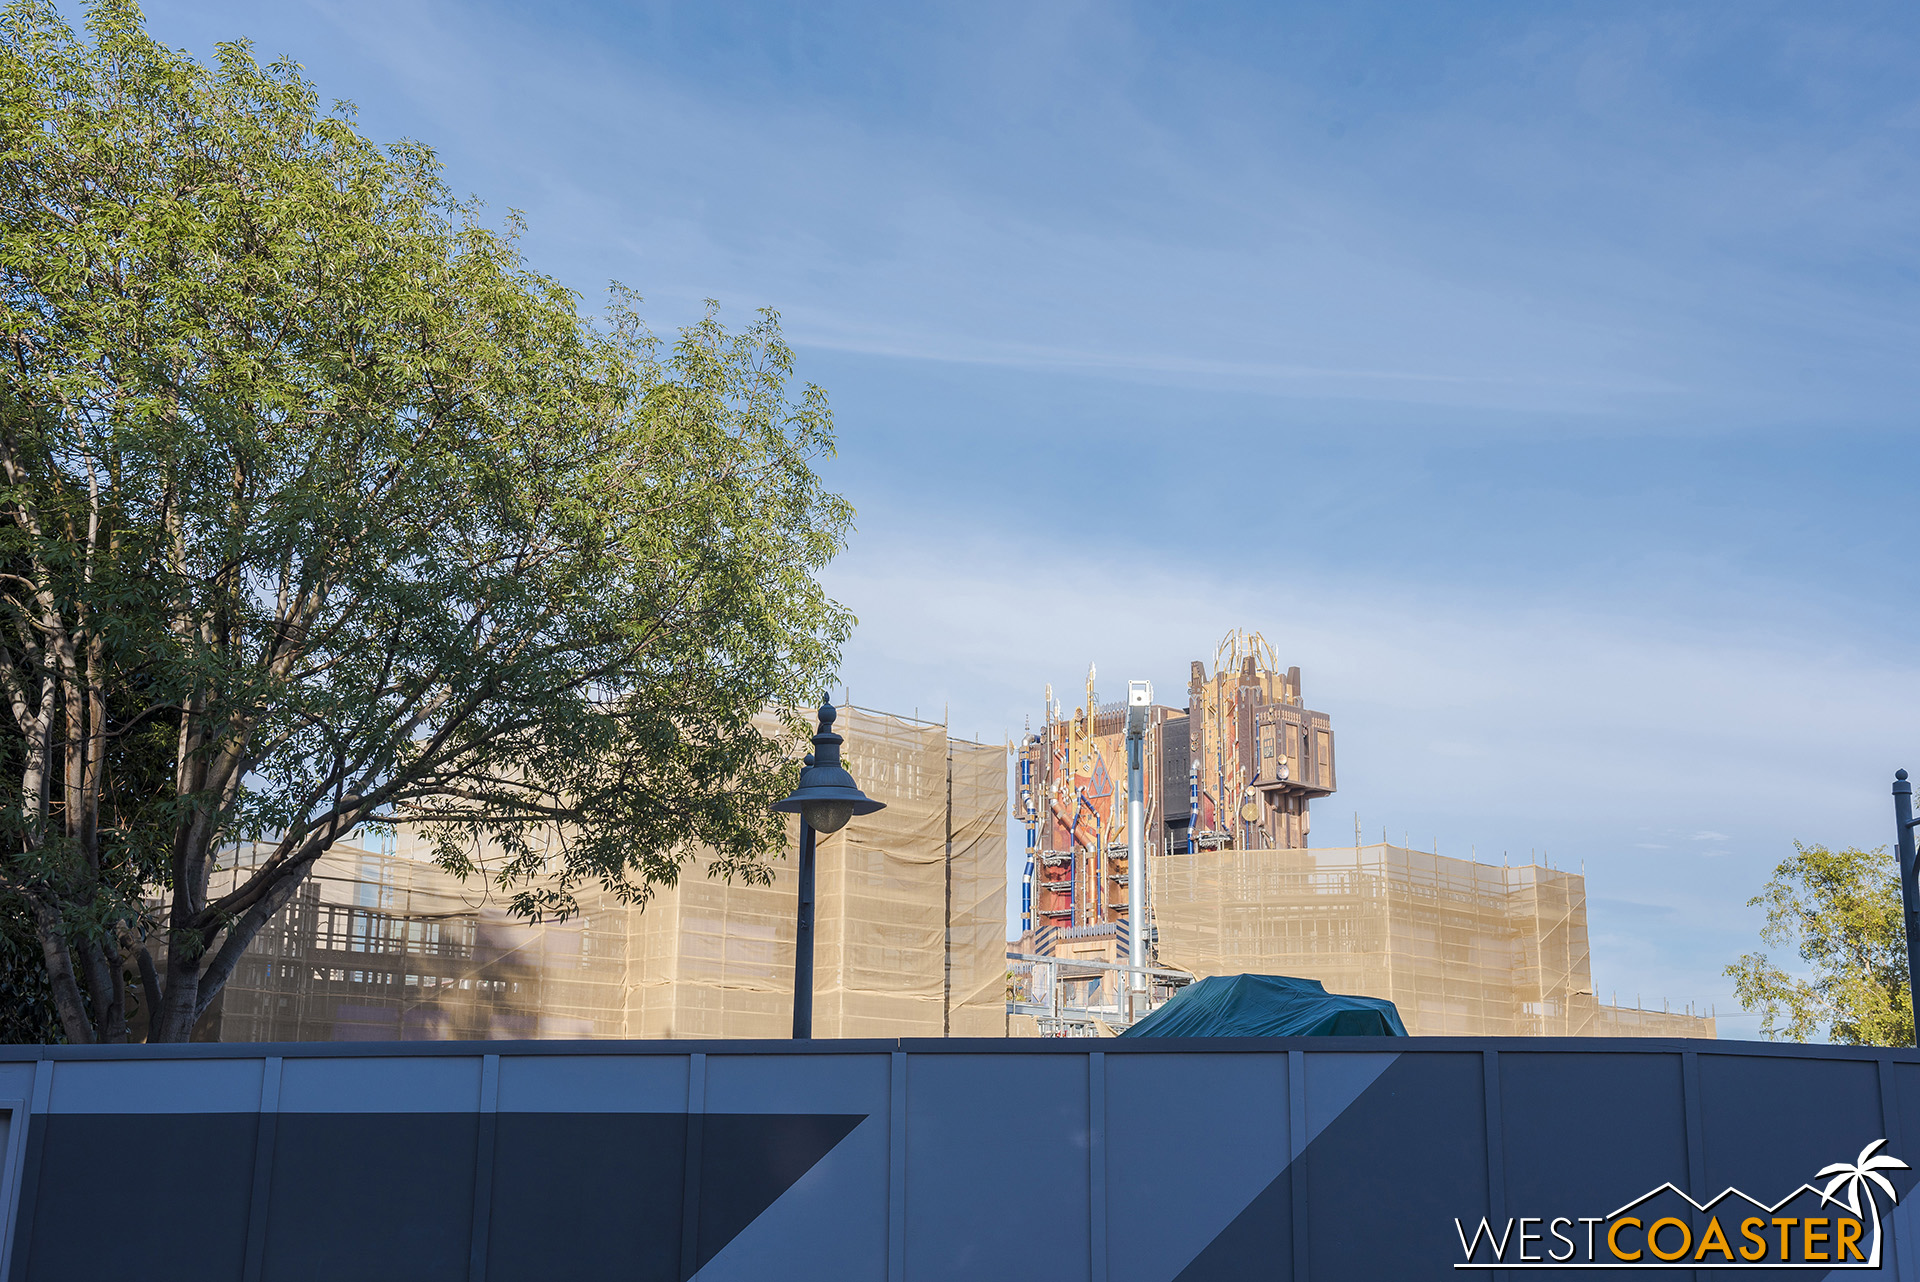 The new Spiderman ride building is doing its best to sort of blend in with Guardians of the Galaxy beyond.